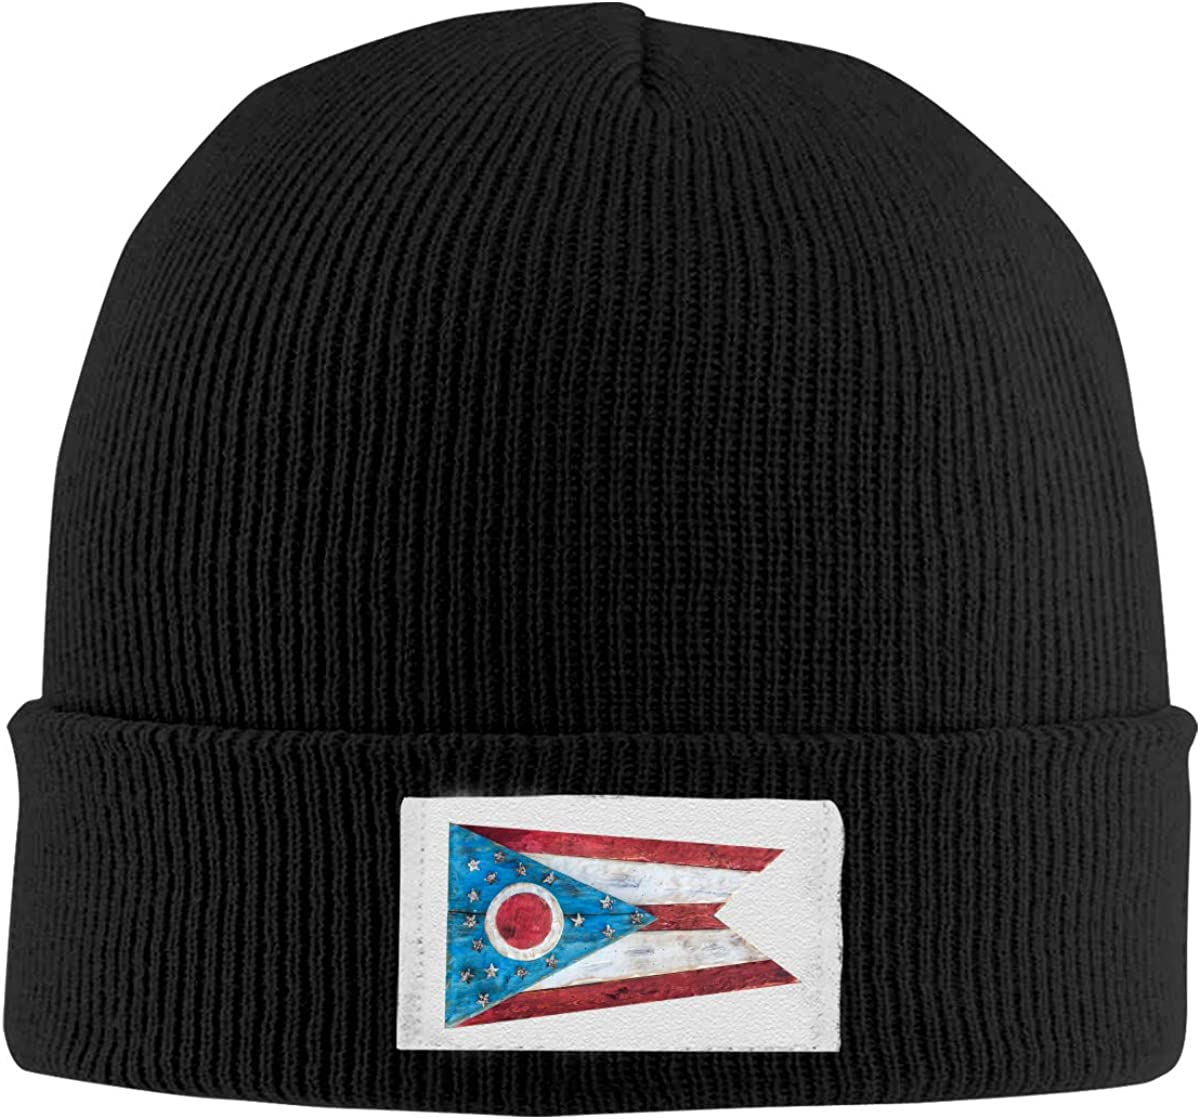 Vintage Ohio Vintage Flag Top Level Beanie Men Women Unisex Stylish Slouch Beanie Hats Black